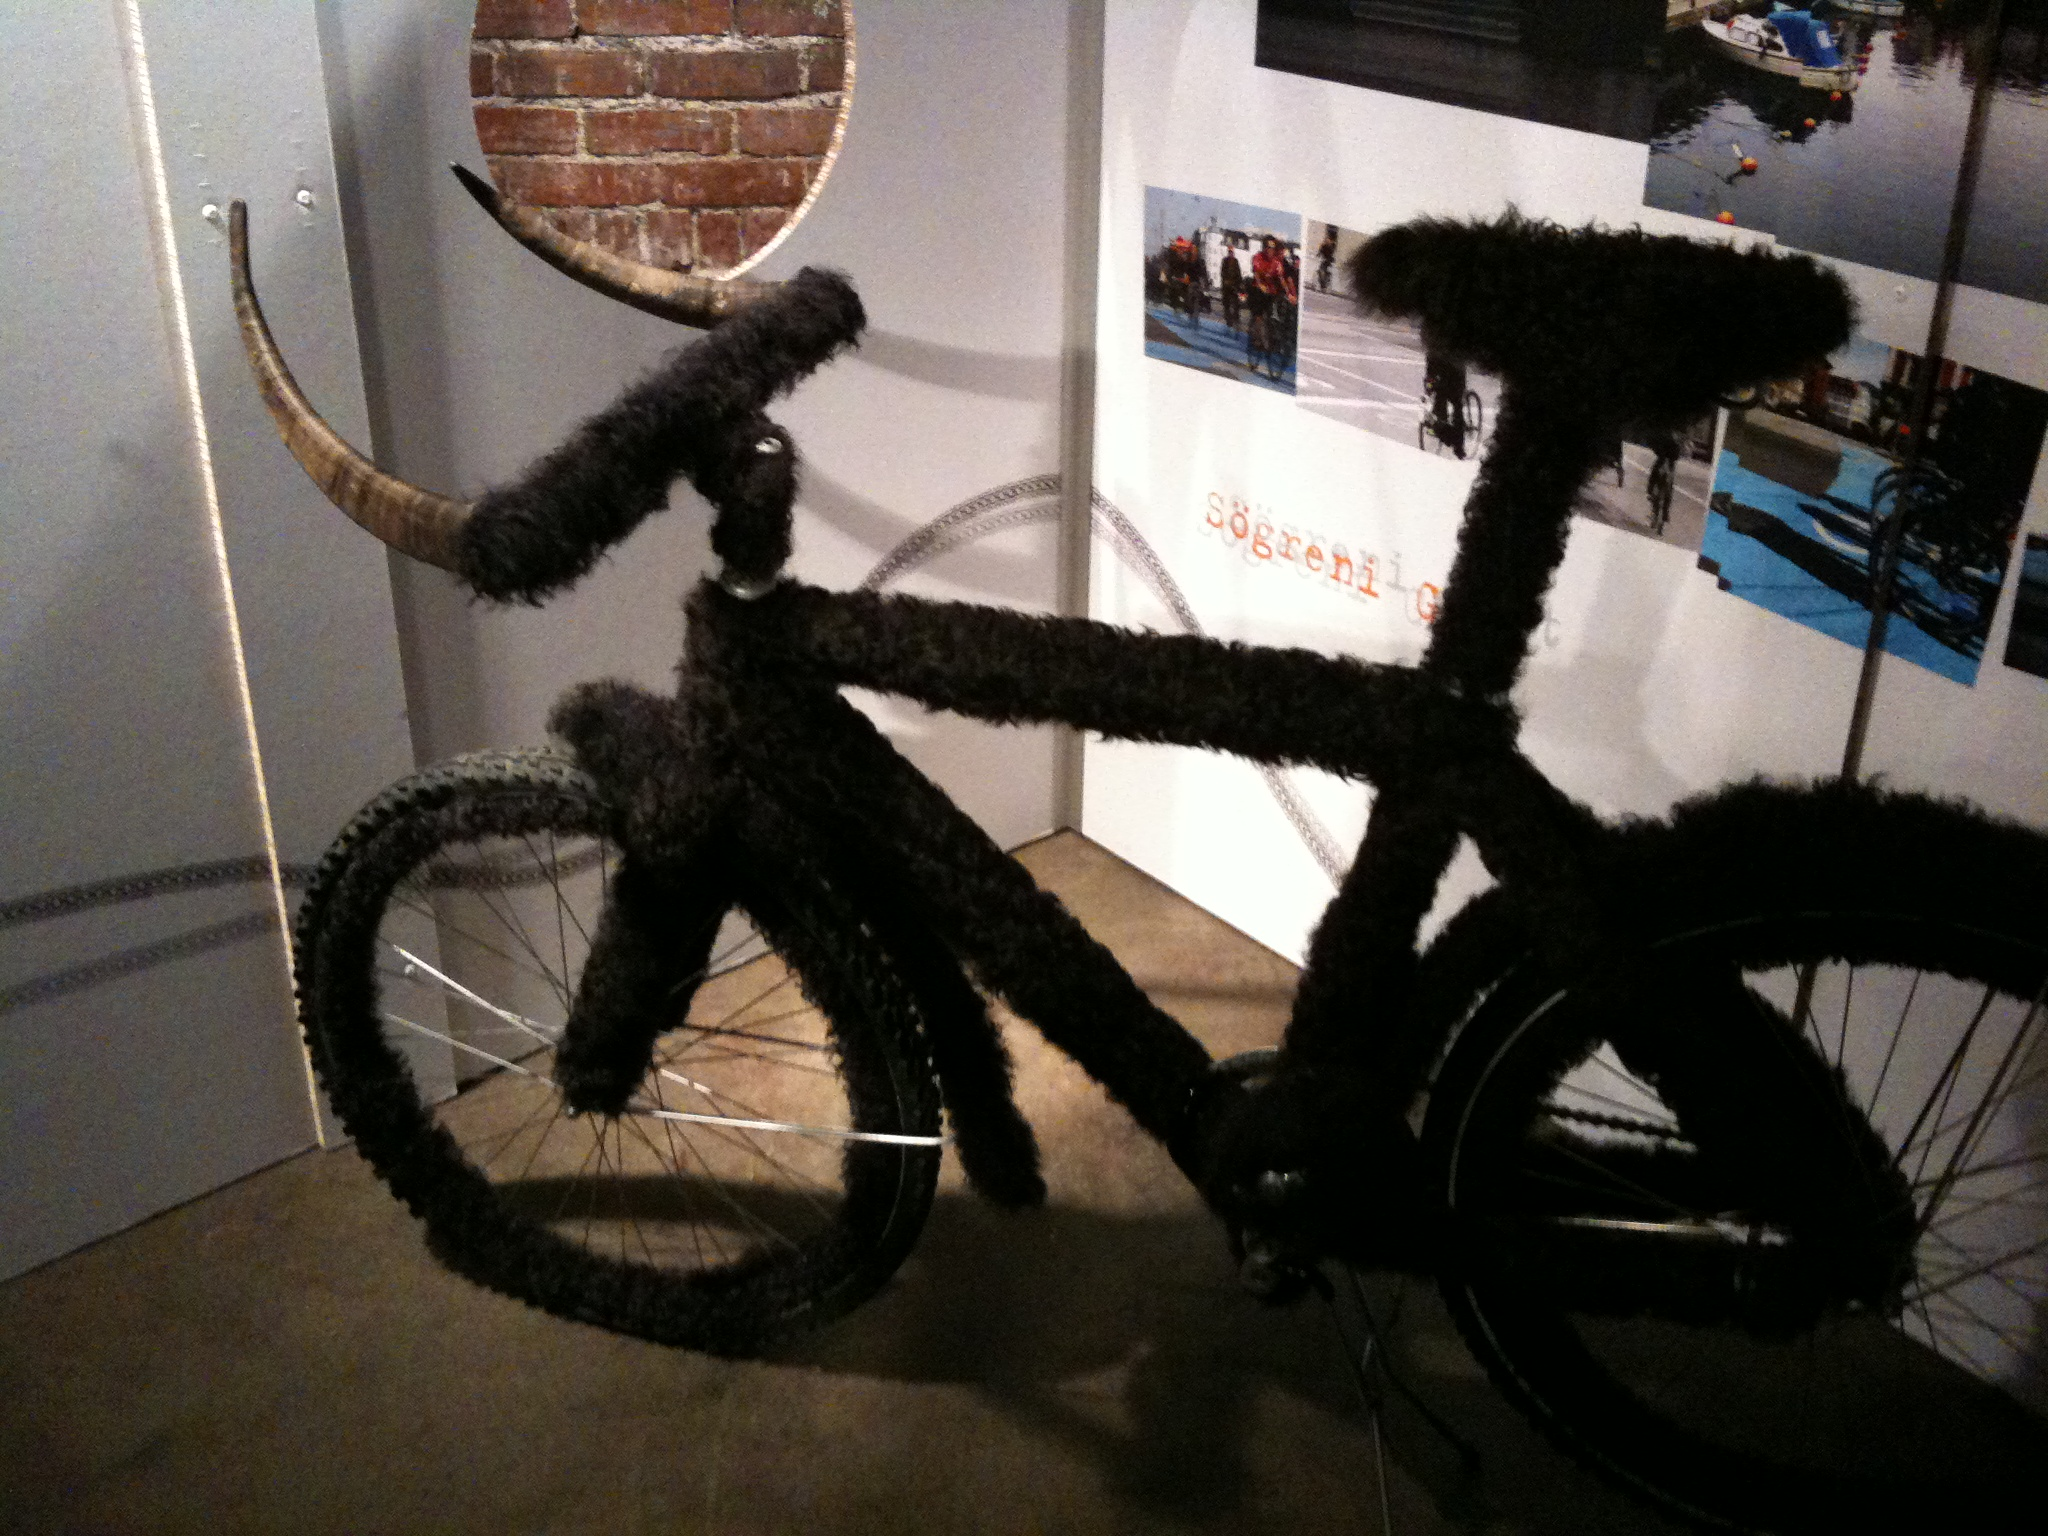 wild thing fur and horn bike